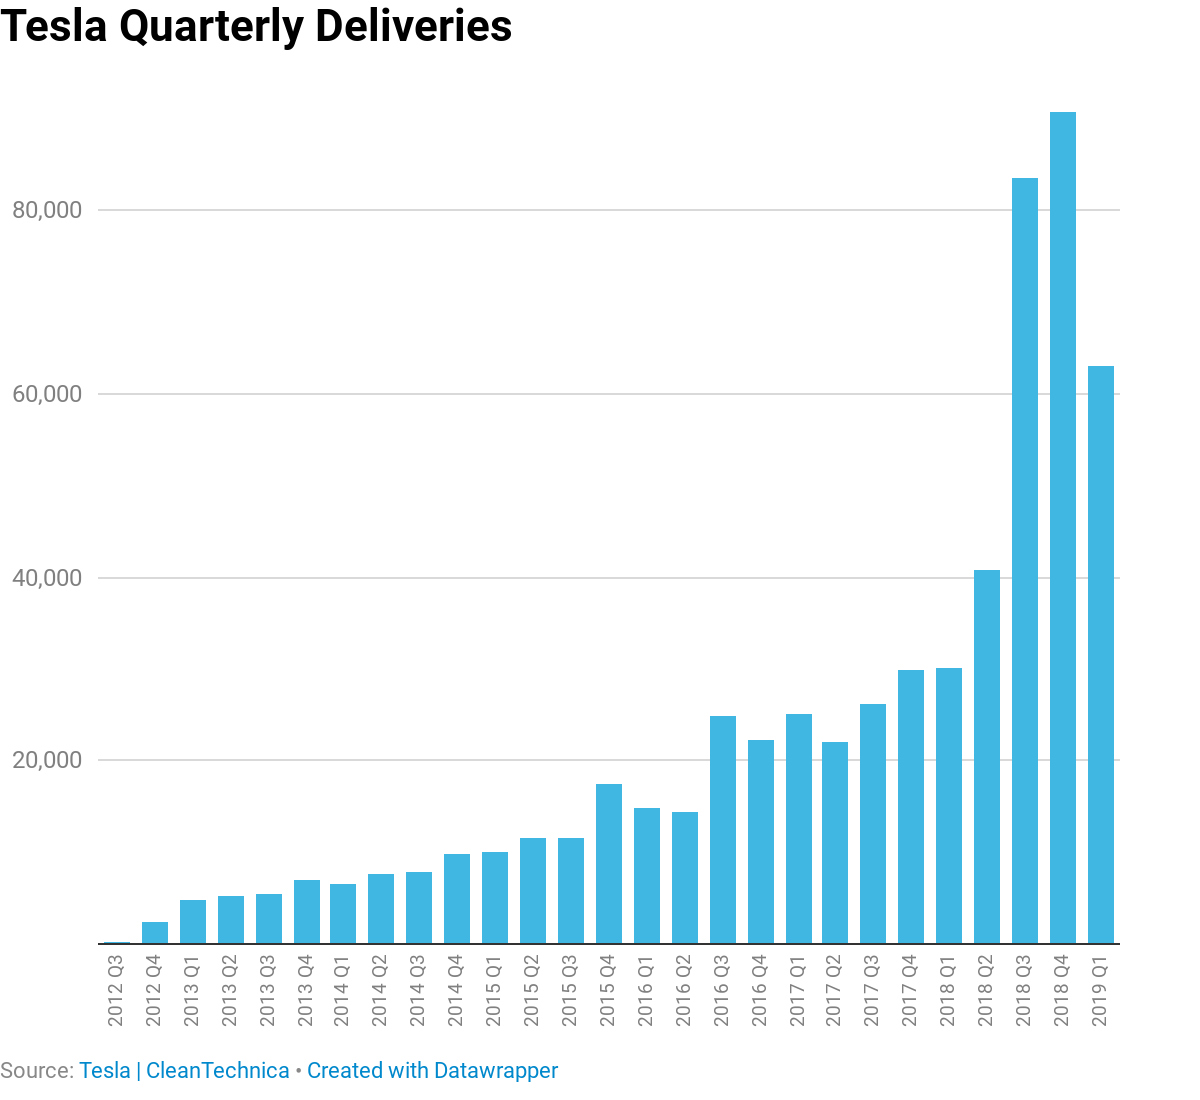 Chart: Tesla Quarterly Deliveries